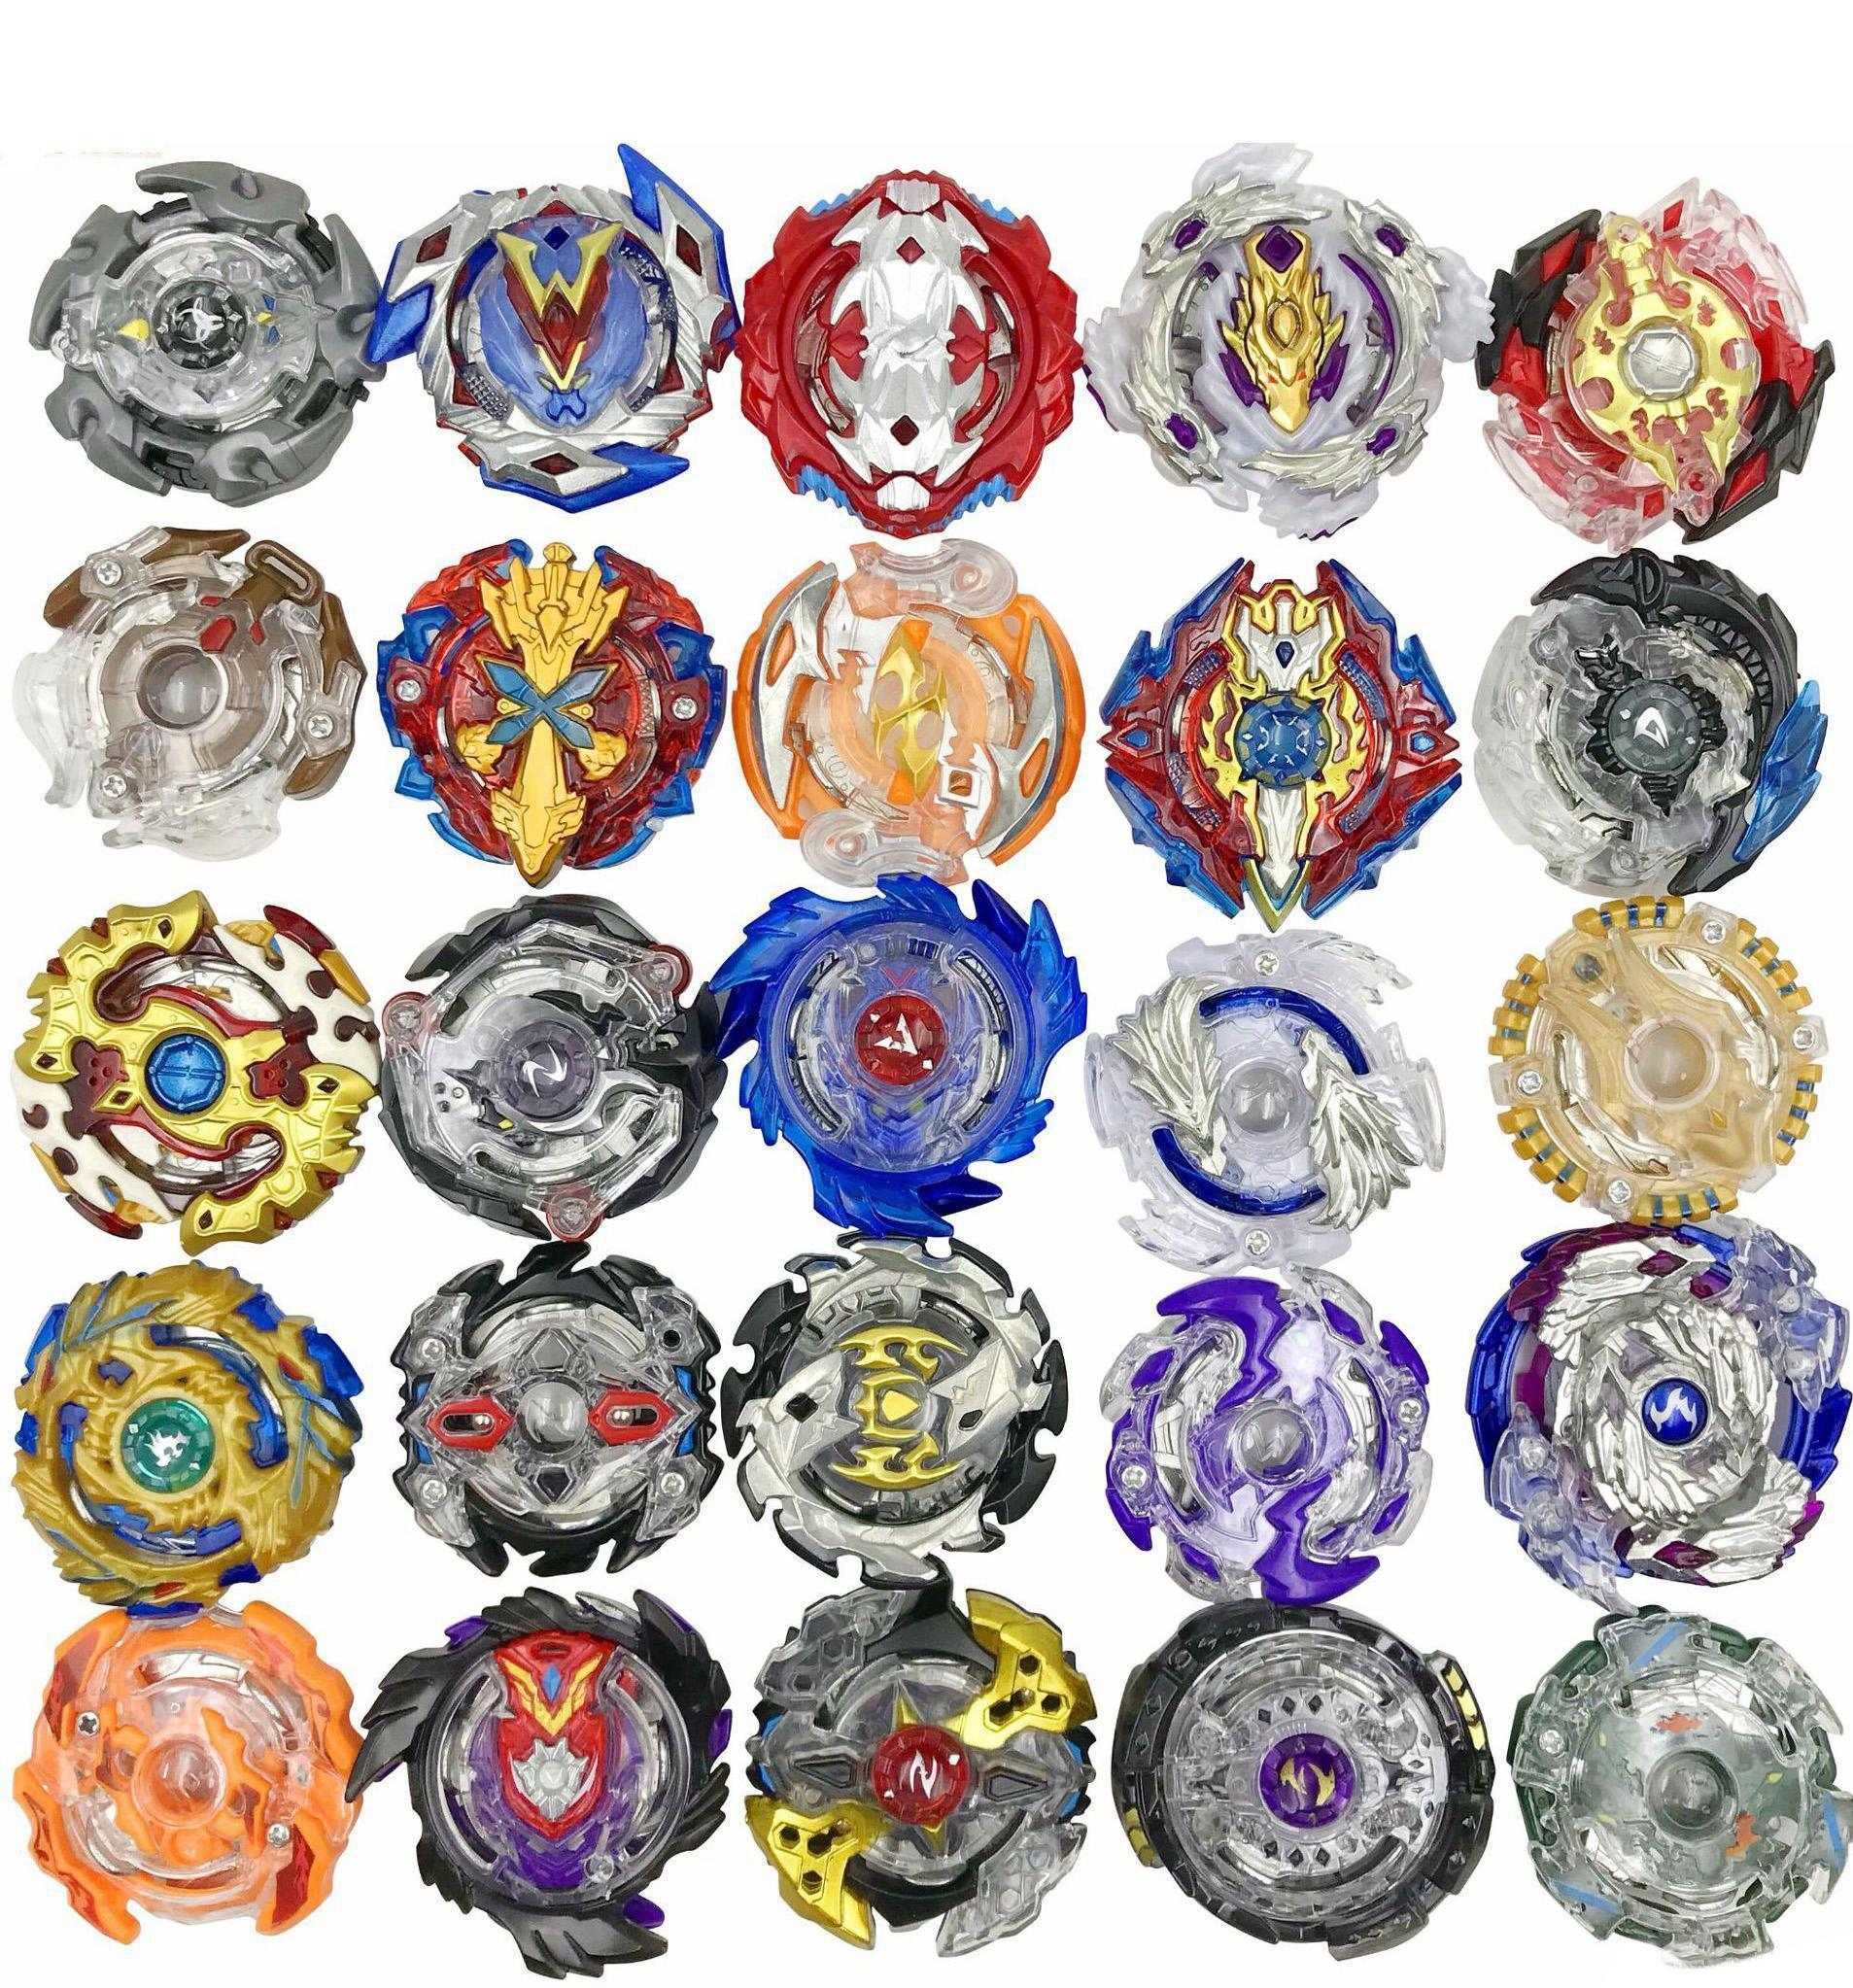 4D spinning top Beyblade Burst With Launcher Kids Boys Toy Starter Zeno Excalibur .M.I (Xeno Xcalibur) Bables Toys